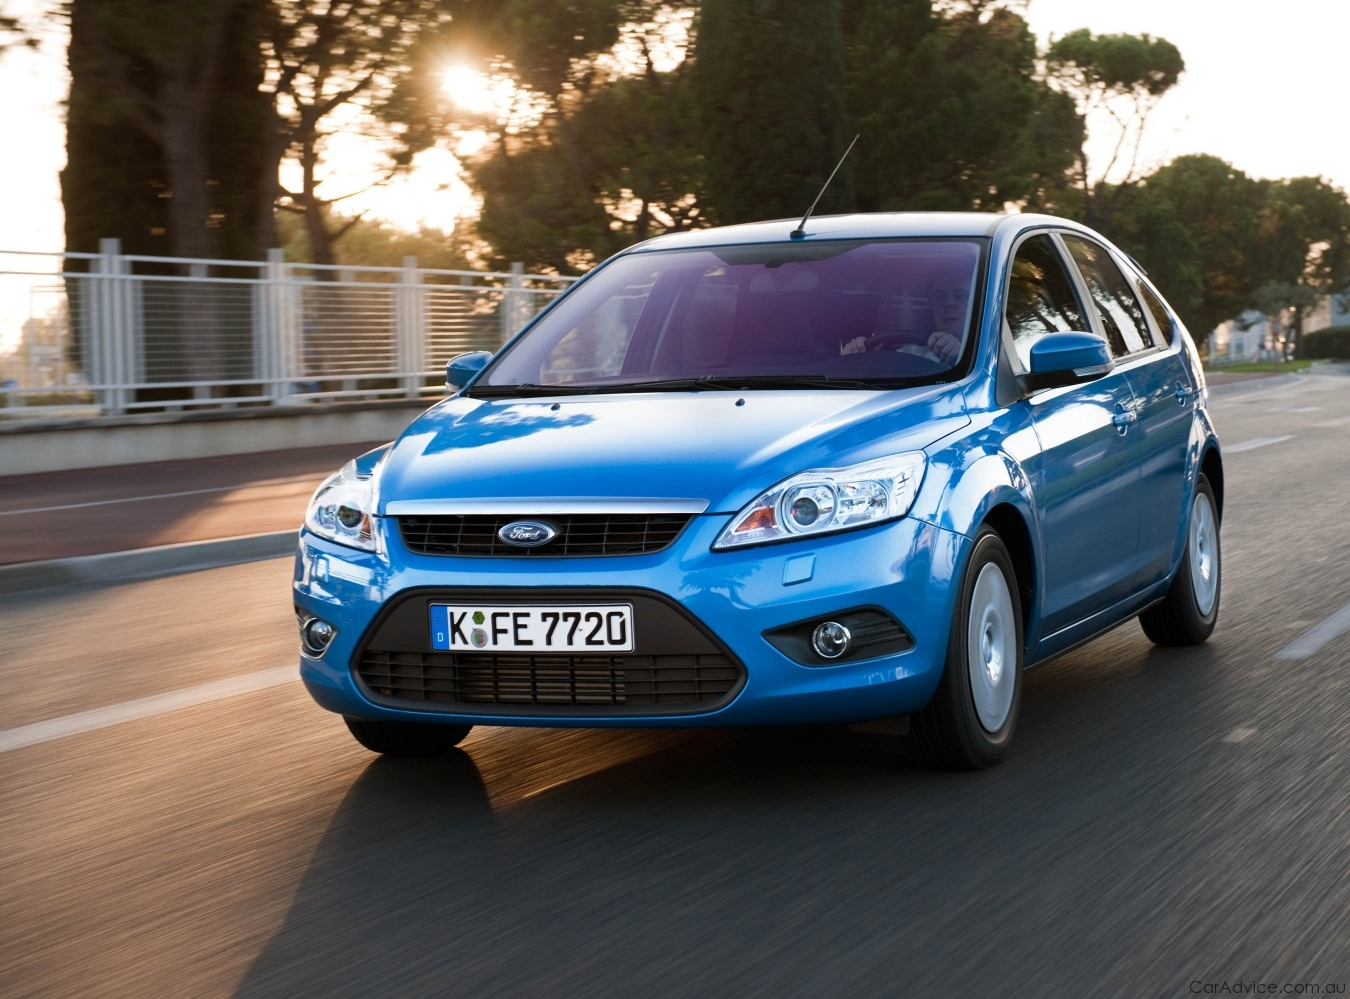 2010 Ford Focus Econetic Revealed Australian Model